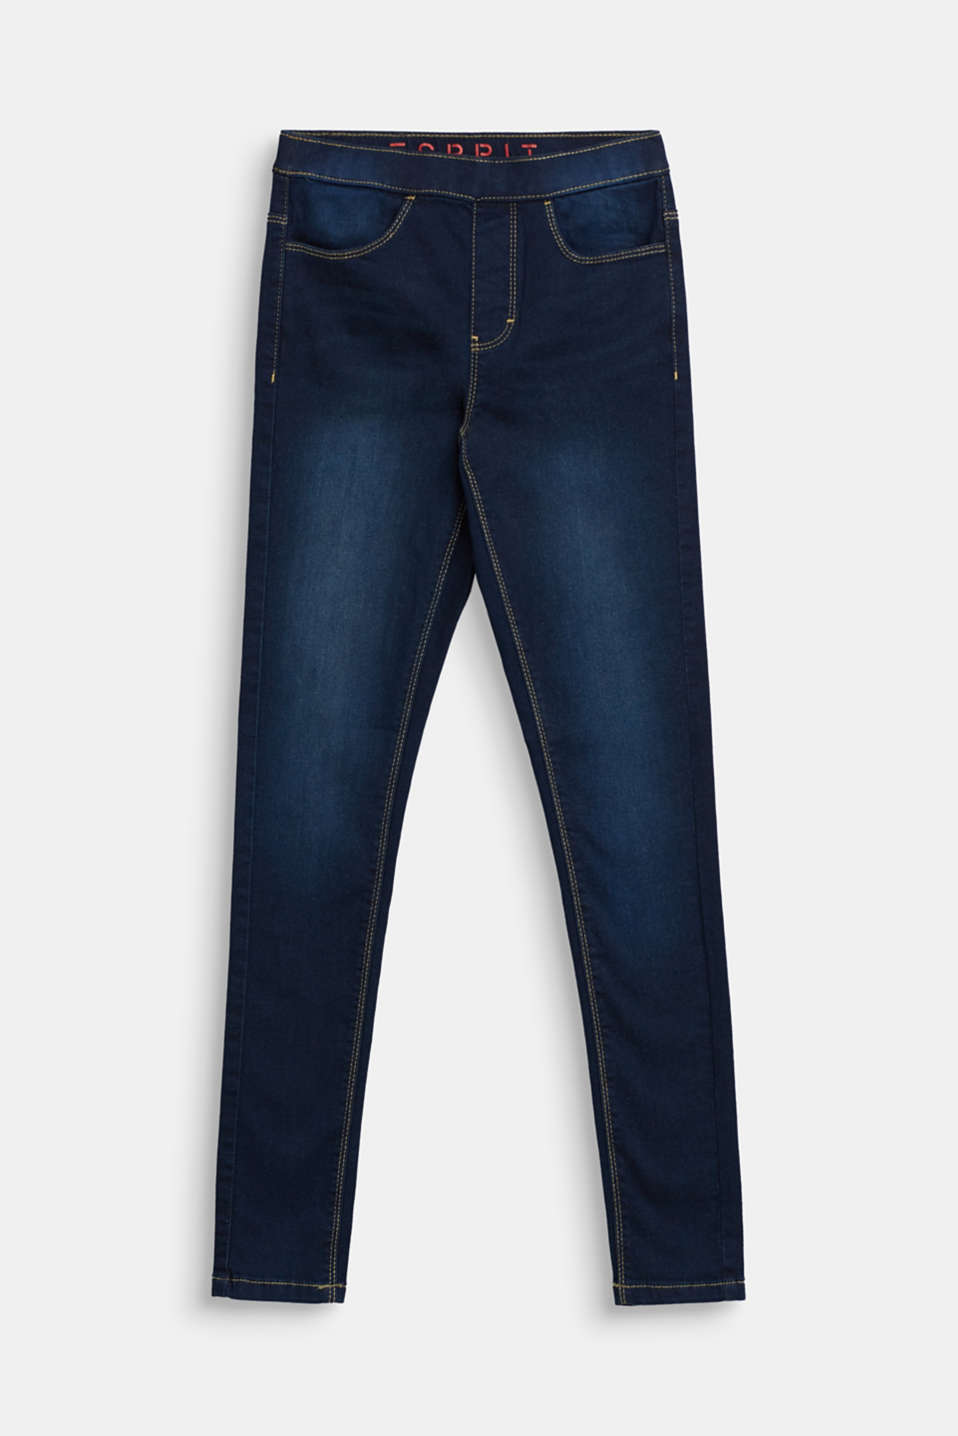 Esprit - Treggings i denimlook